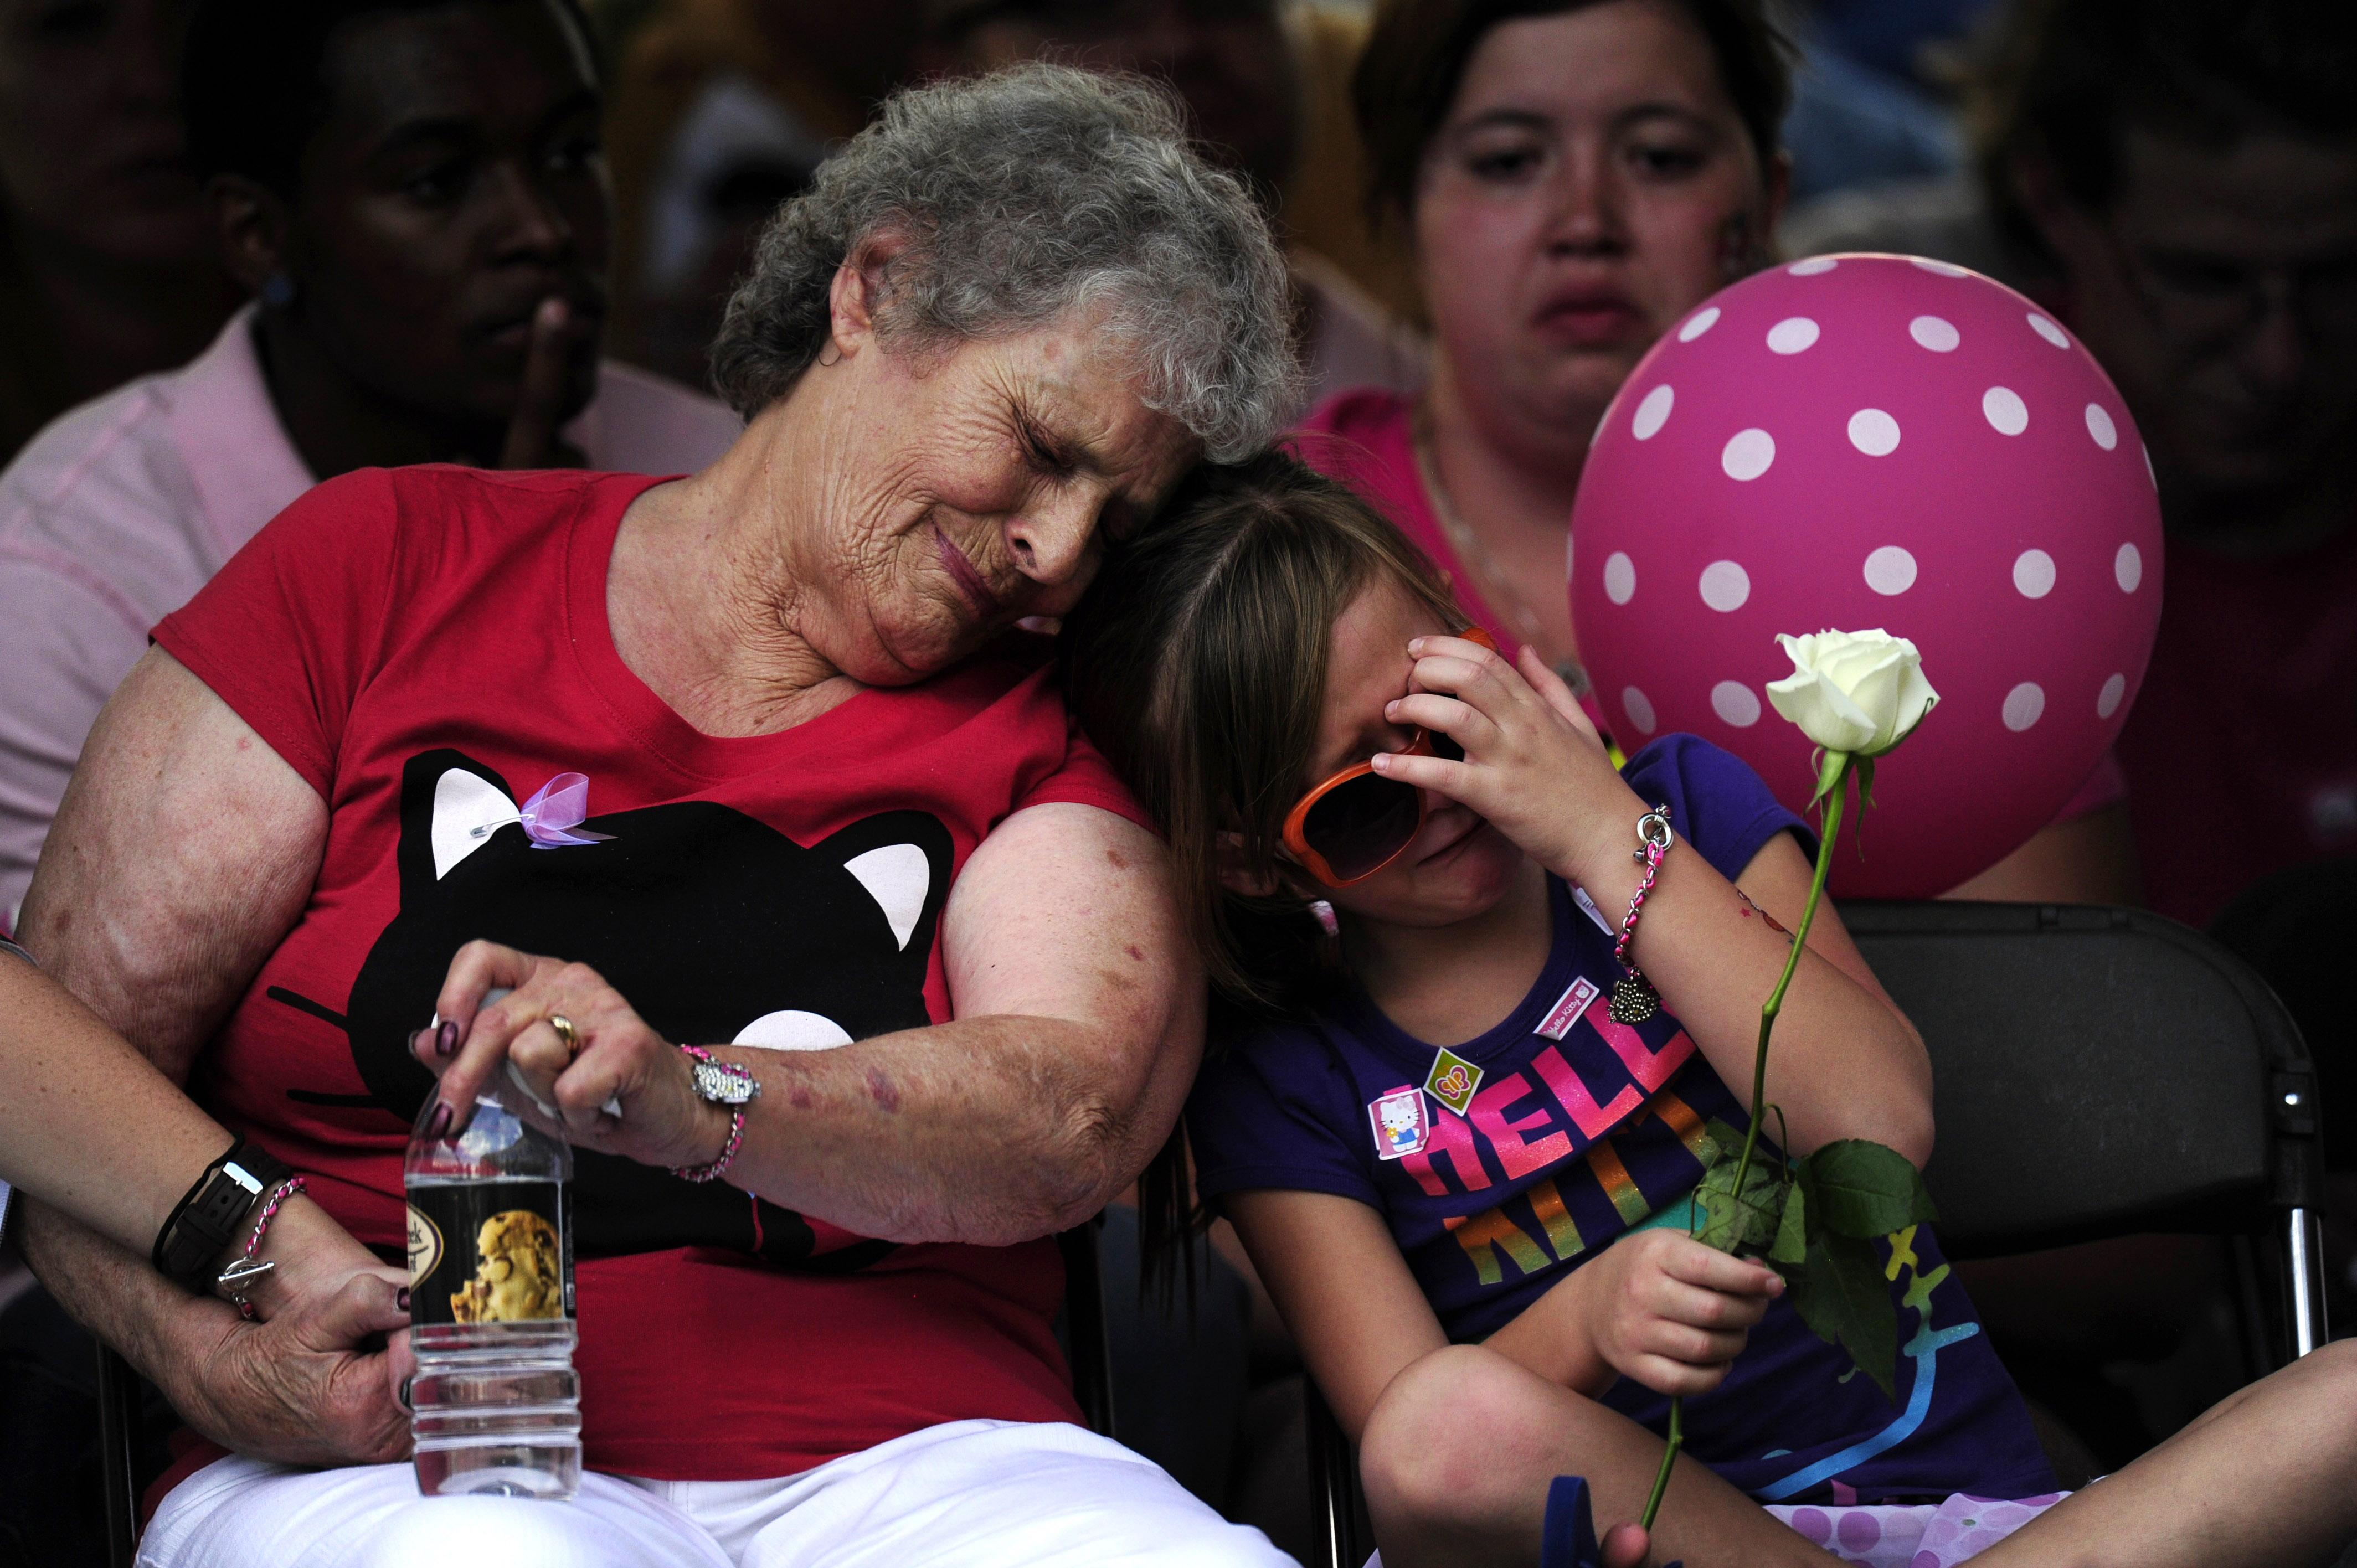 """Family members of the victims of the Century 16 theater shooting remember their loved ones during a vigil at the Aurora Municipal Center campus in Aurora, Colo. Sunday, July 22, 2012. 12 people were killed and 58 were injured in a shooting during an early Friday premiere of """"The Dark Knight Rises."""" (AP Photo/The Denver Post, AAron Ontiveroz, Pool)"""